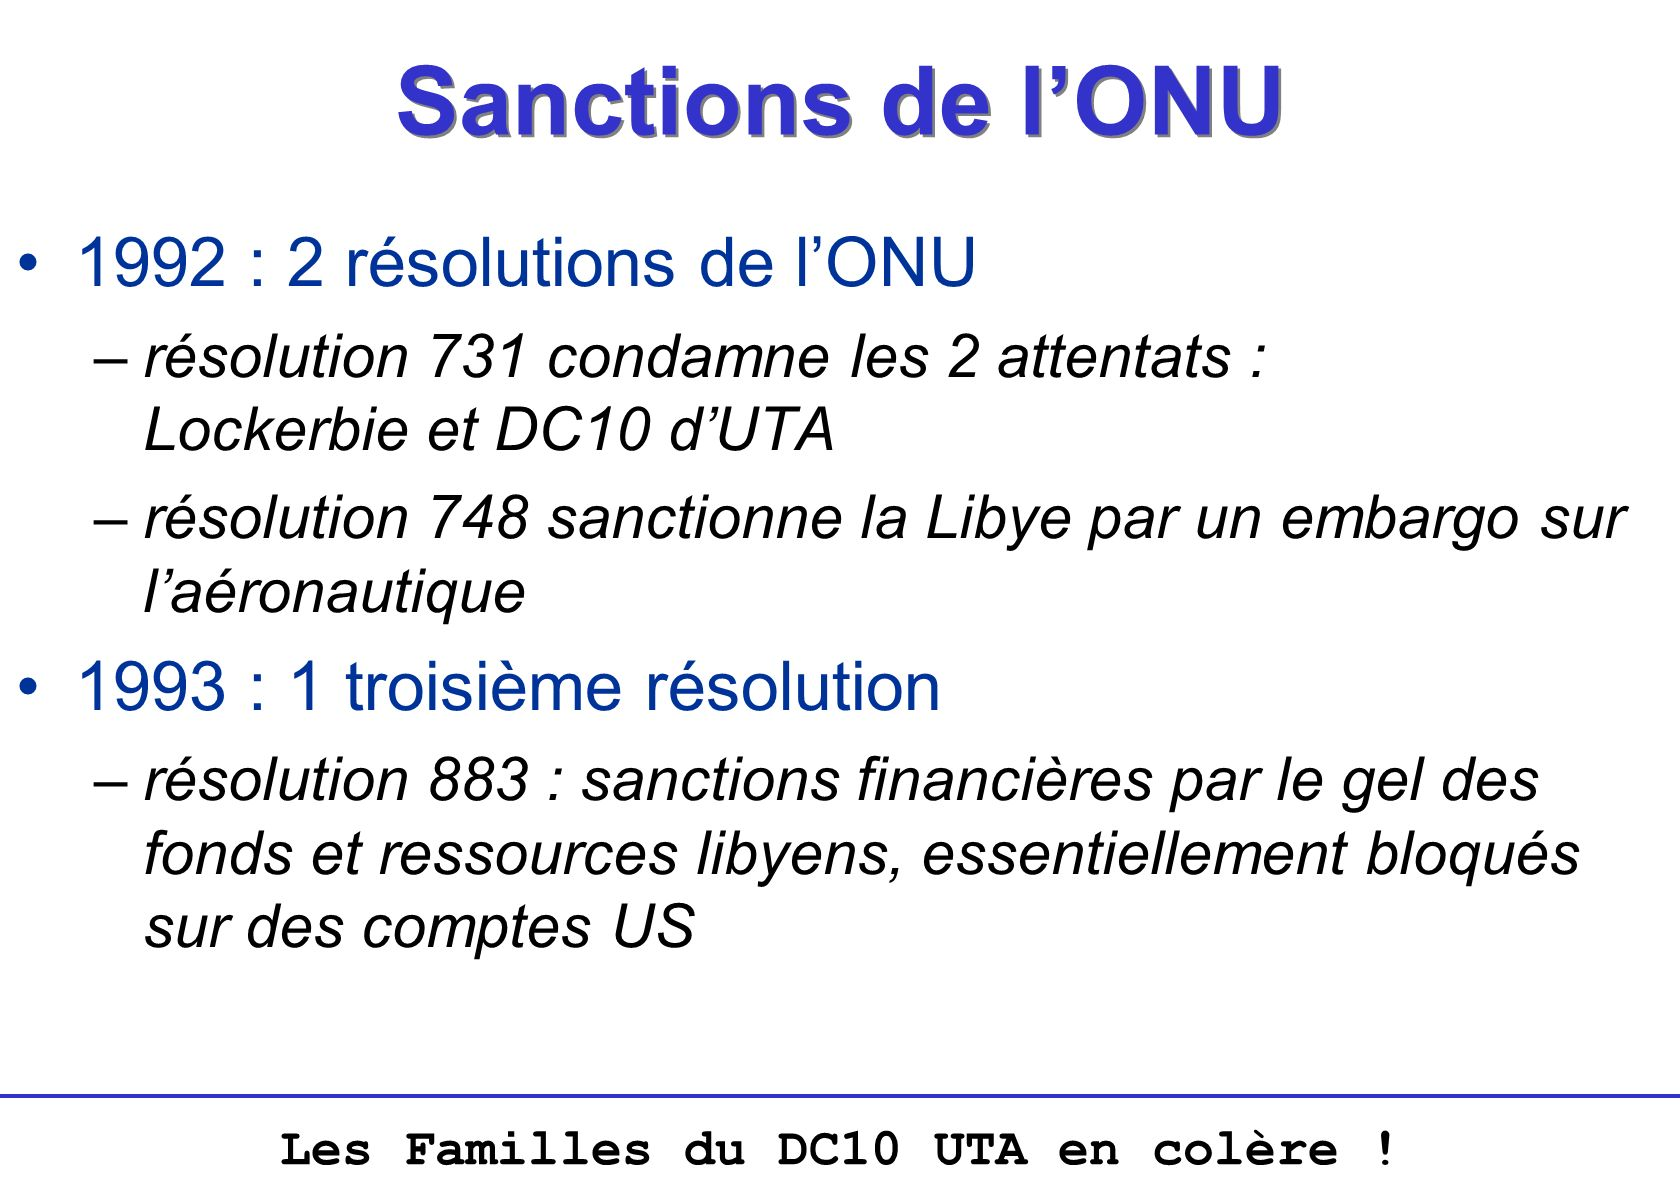 Sanctions de l'ONU 1992 : 2 résolutions de l'ONU